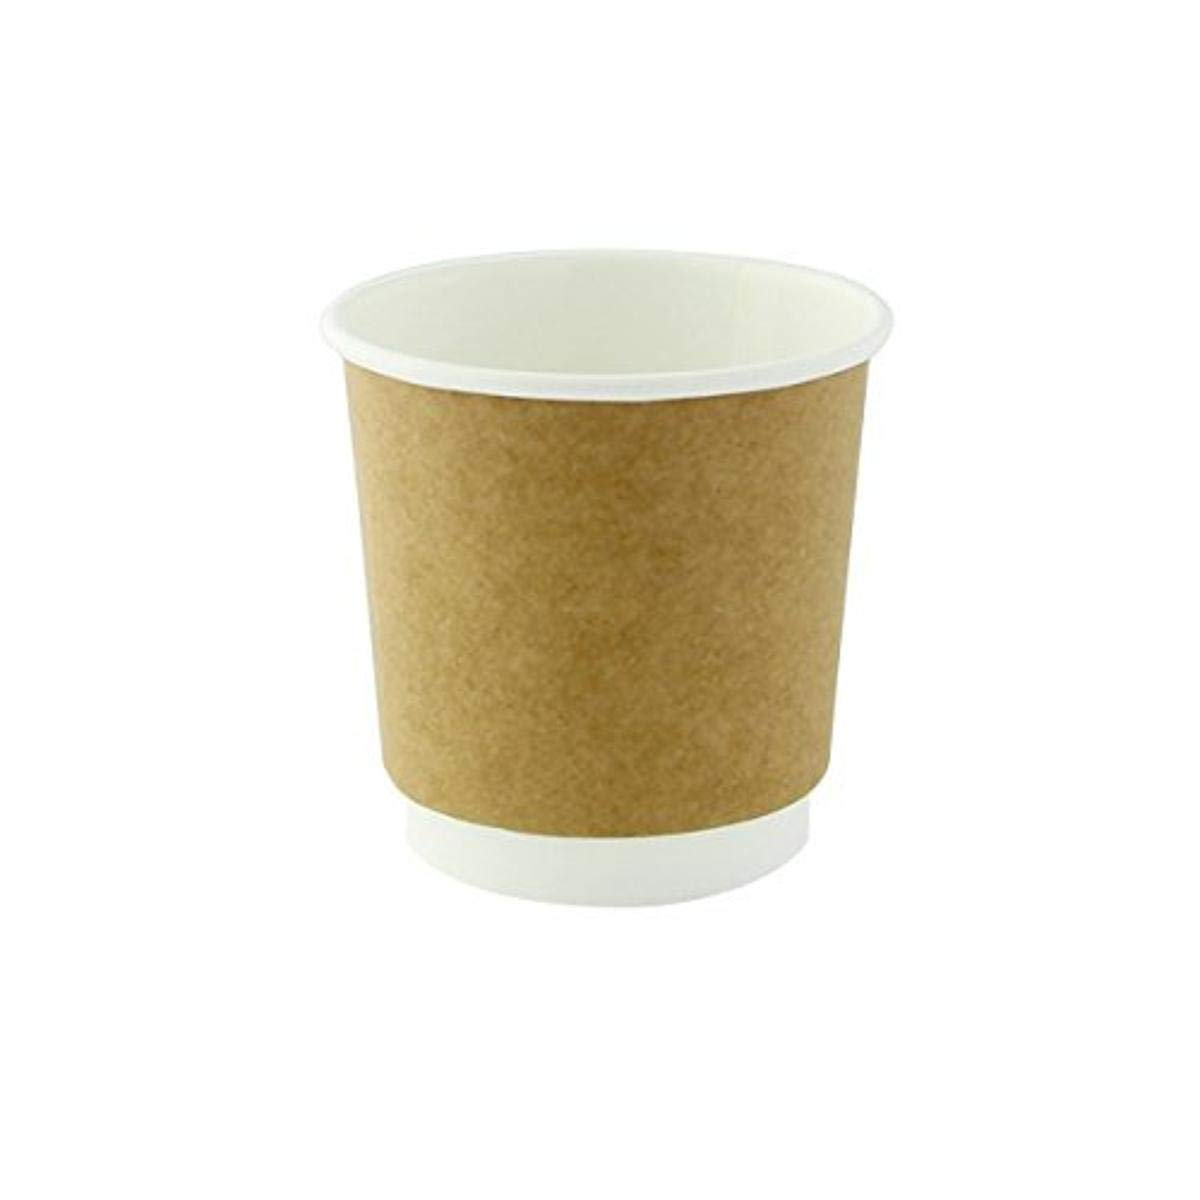 Zen Kraft Paper Cup Case of 1000 - PacknWood Disposable Ranking TOP19 New products world's highest quality popular Brown